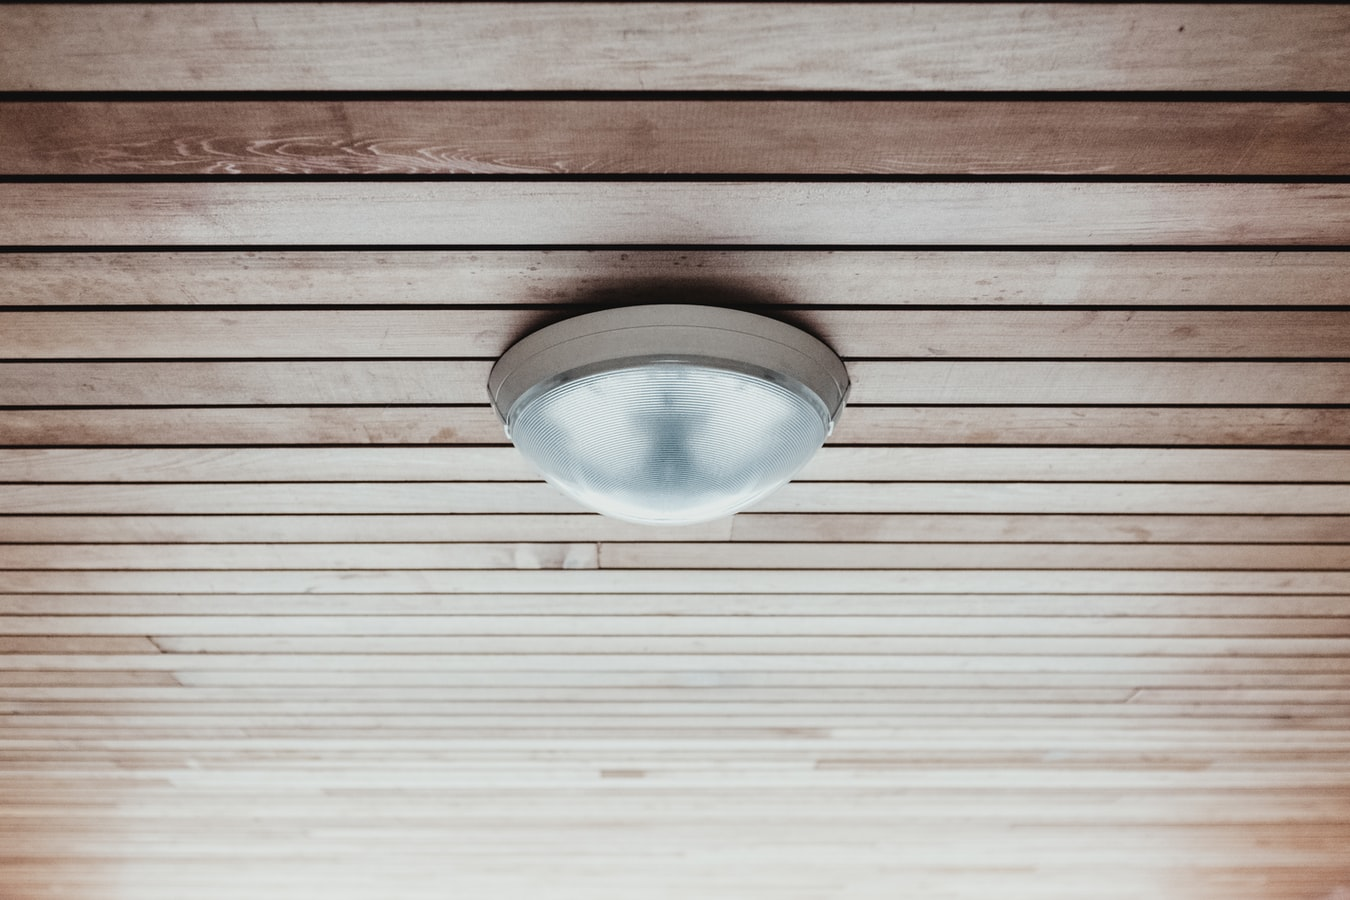 ceiling light cover won't come off